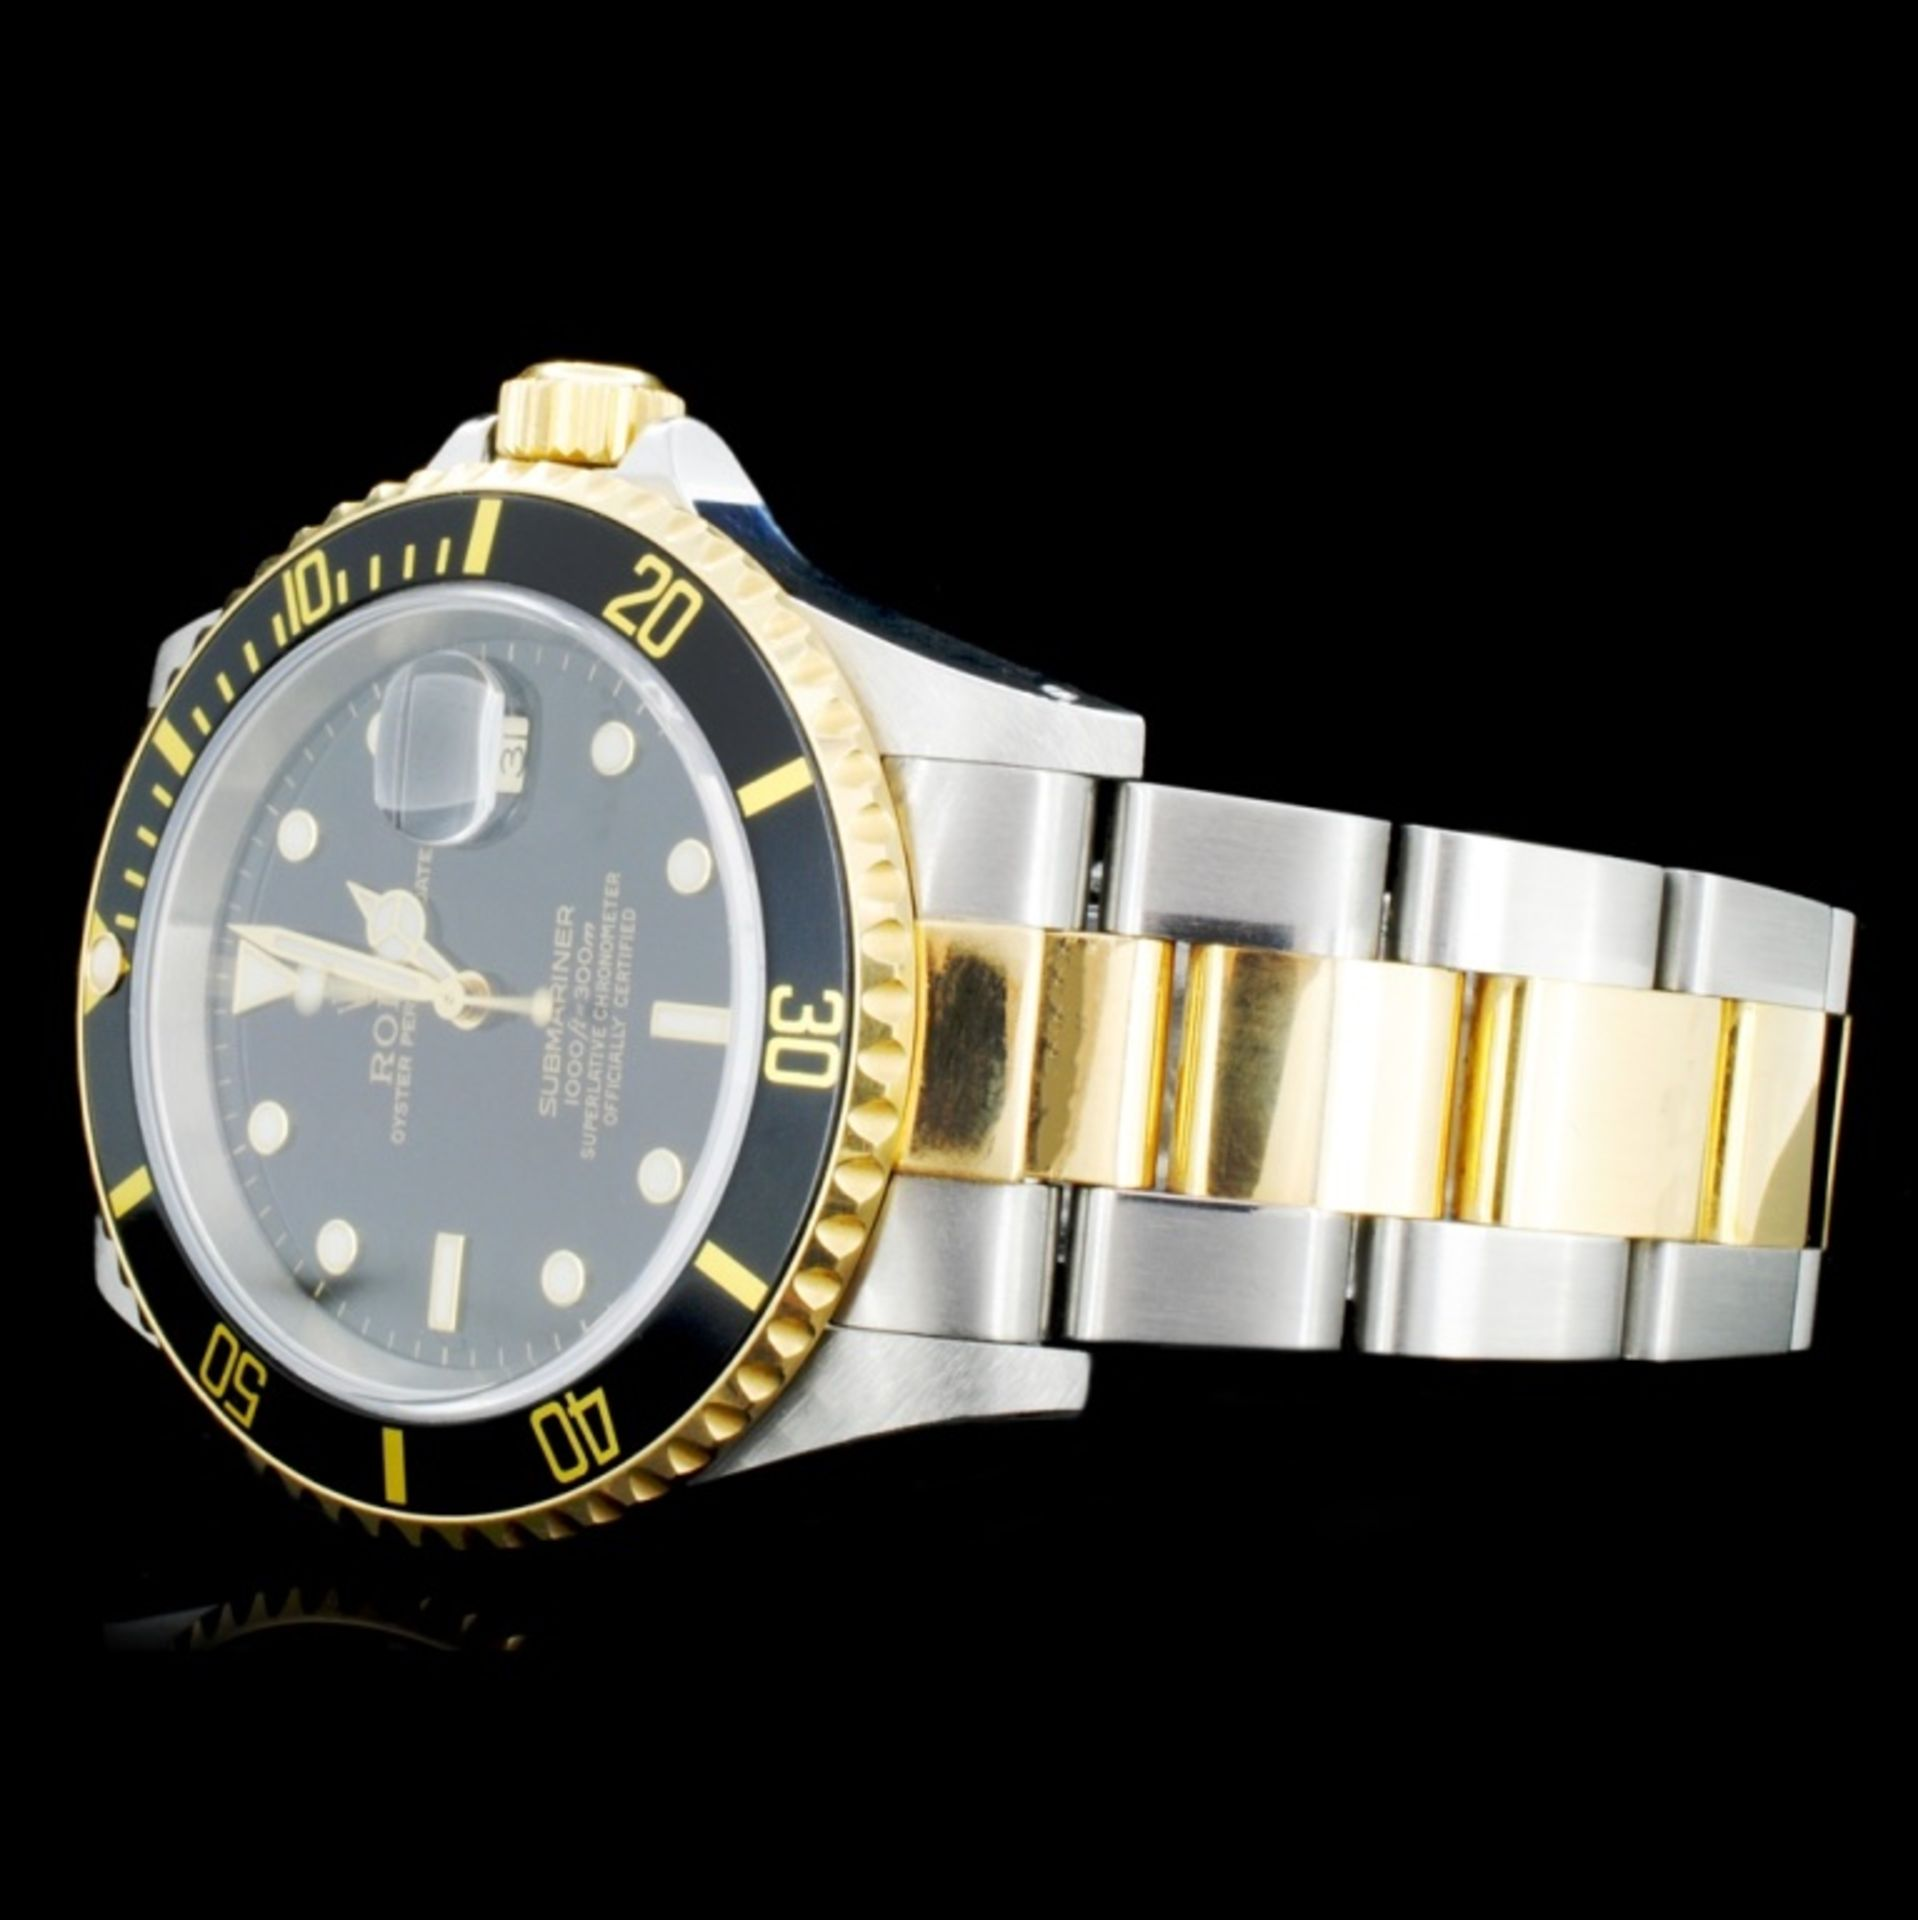 Rolex Submariner 18K & Stainless Steel 40MM Watch - Image 2 of 5